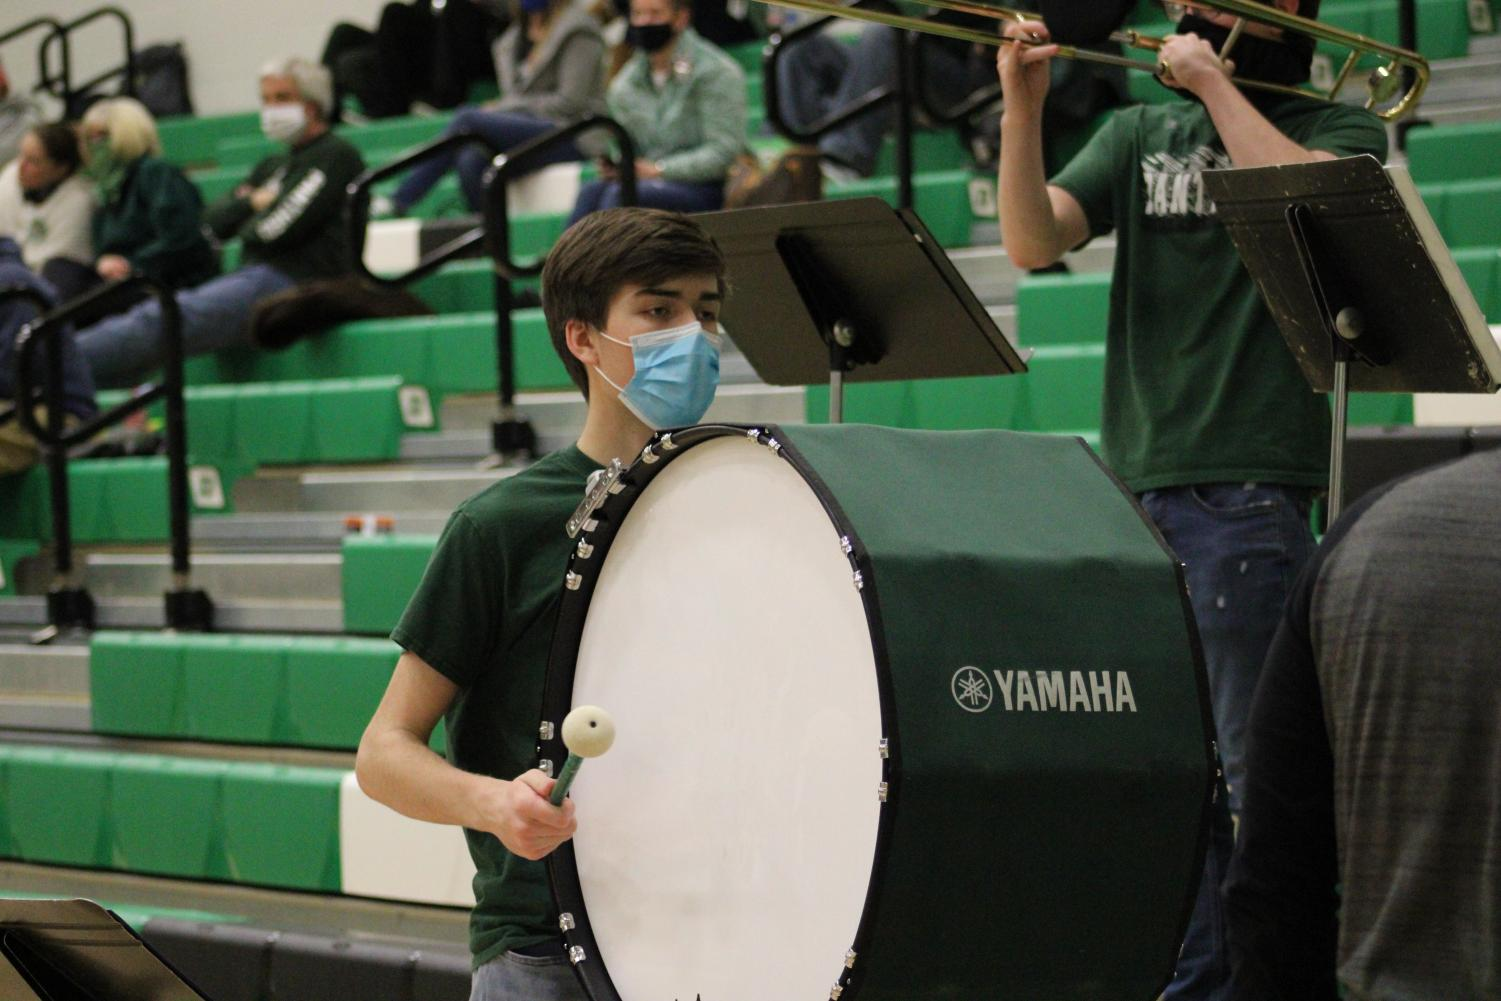 DHS+Basketball+Band+2%2F12%2F21+%28Photos+by+Joselyn+Steele%29